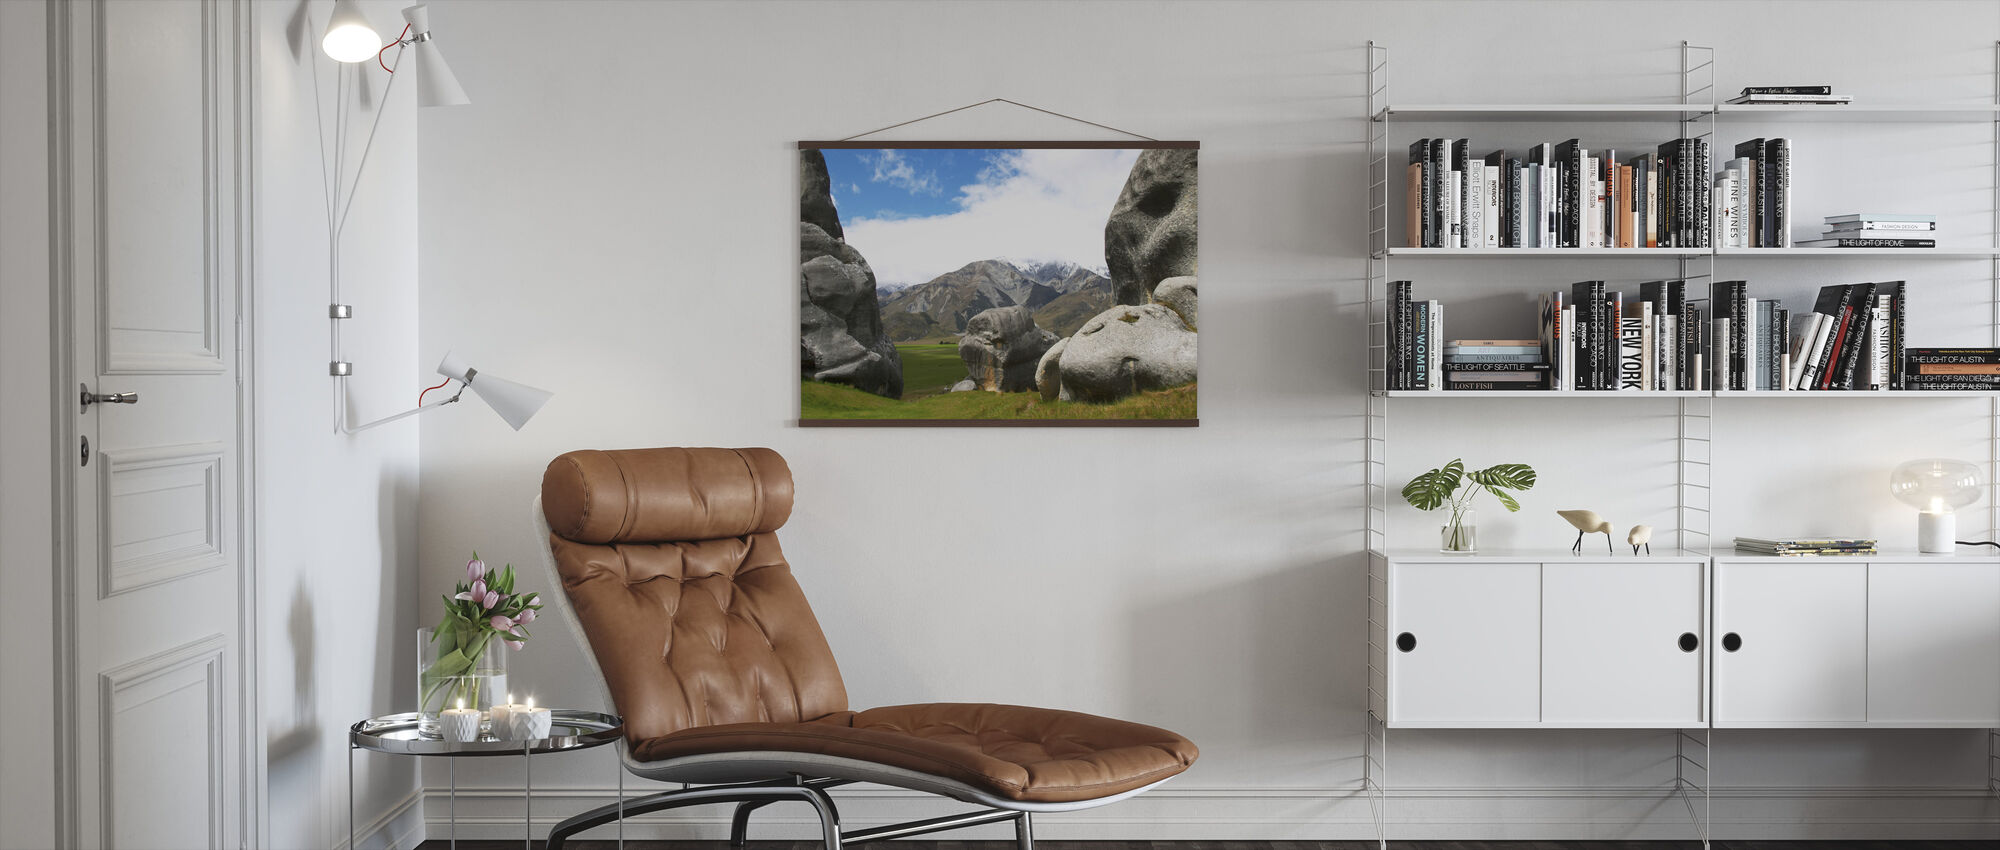 Nz View - Poster - Living Room